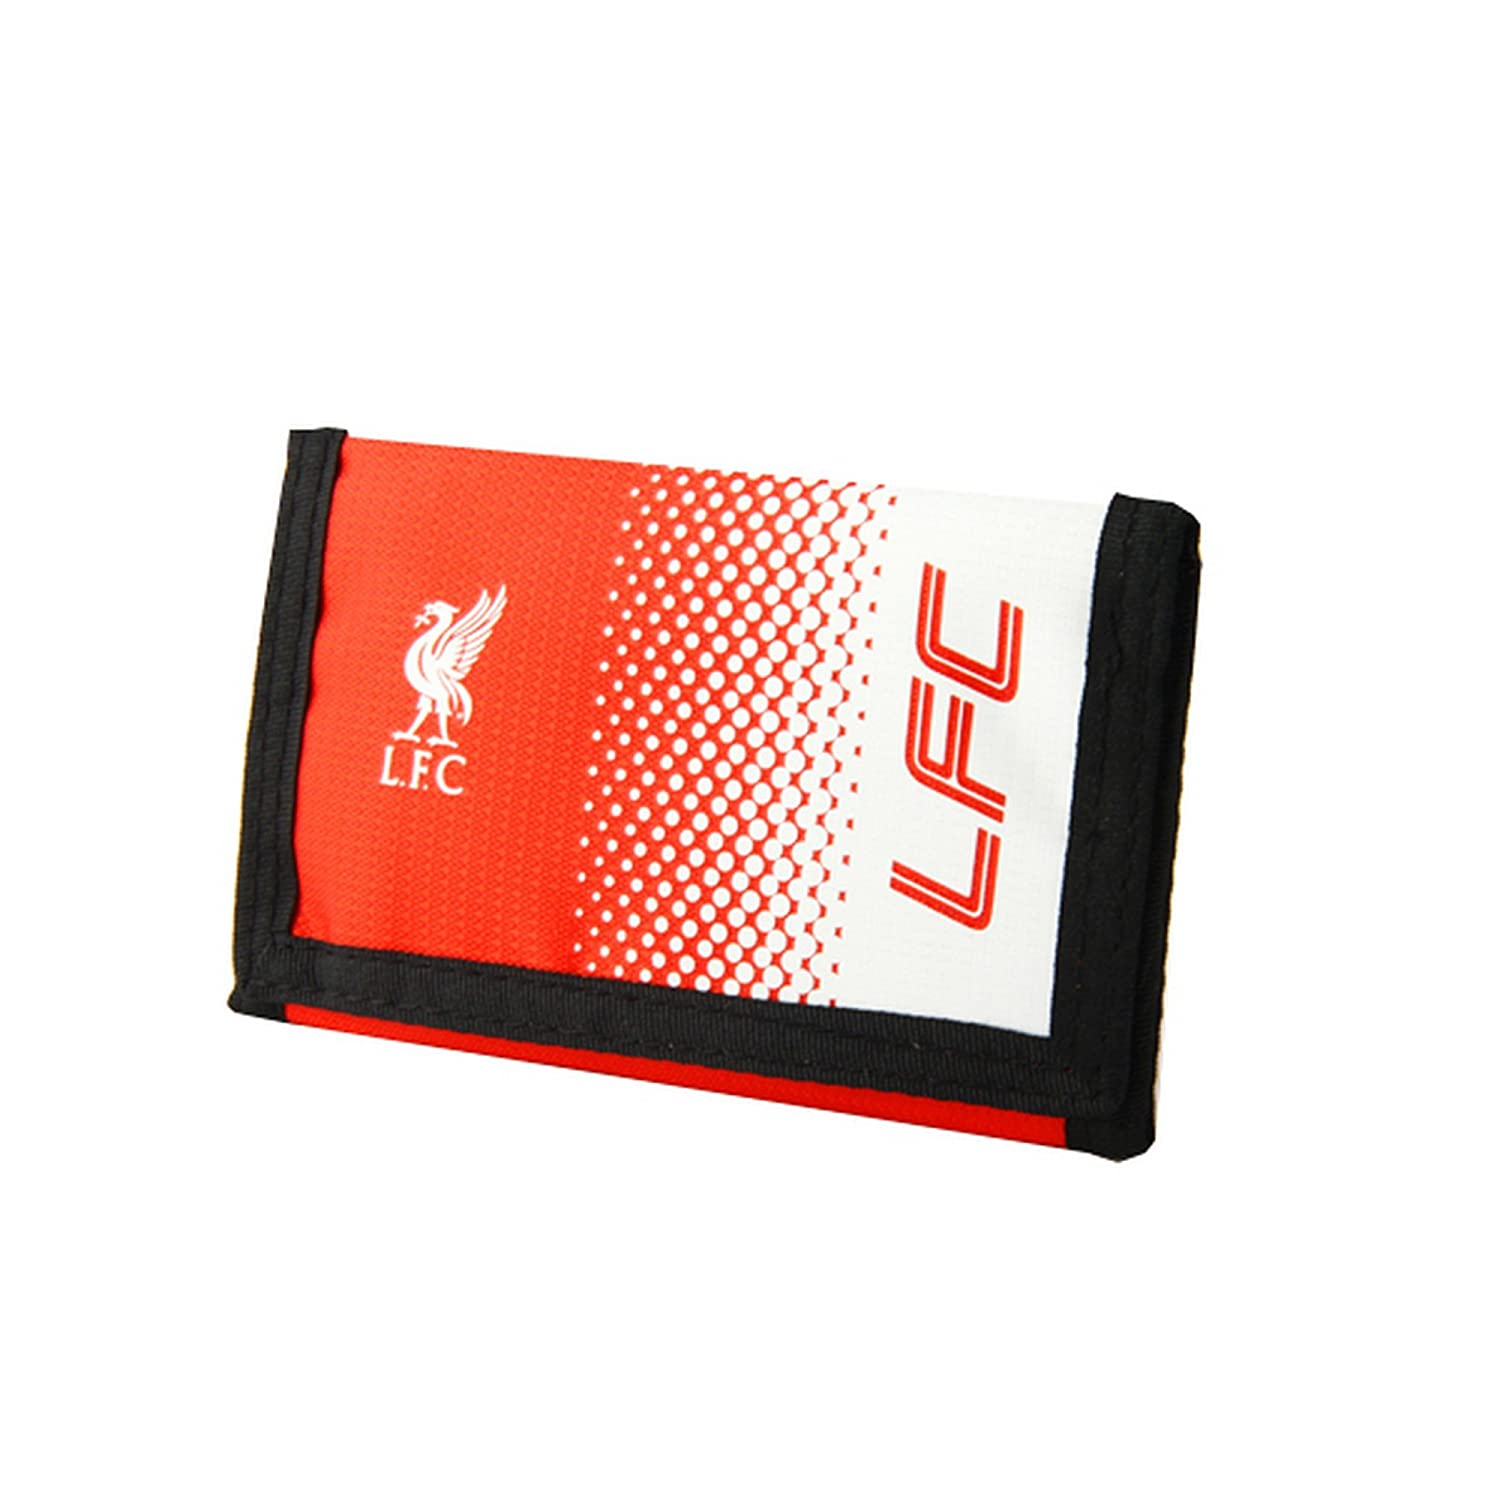 Liverpool FC Wallet Fade Design Official Football Merchandise 5015860240386